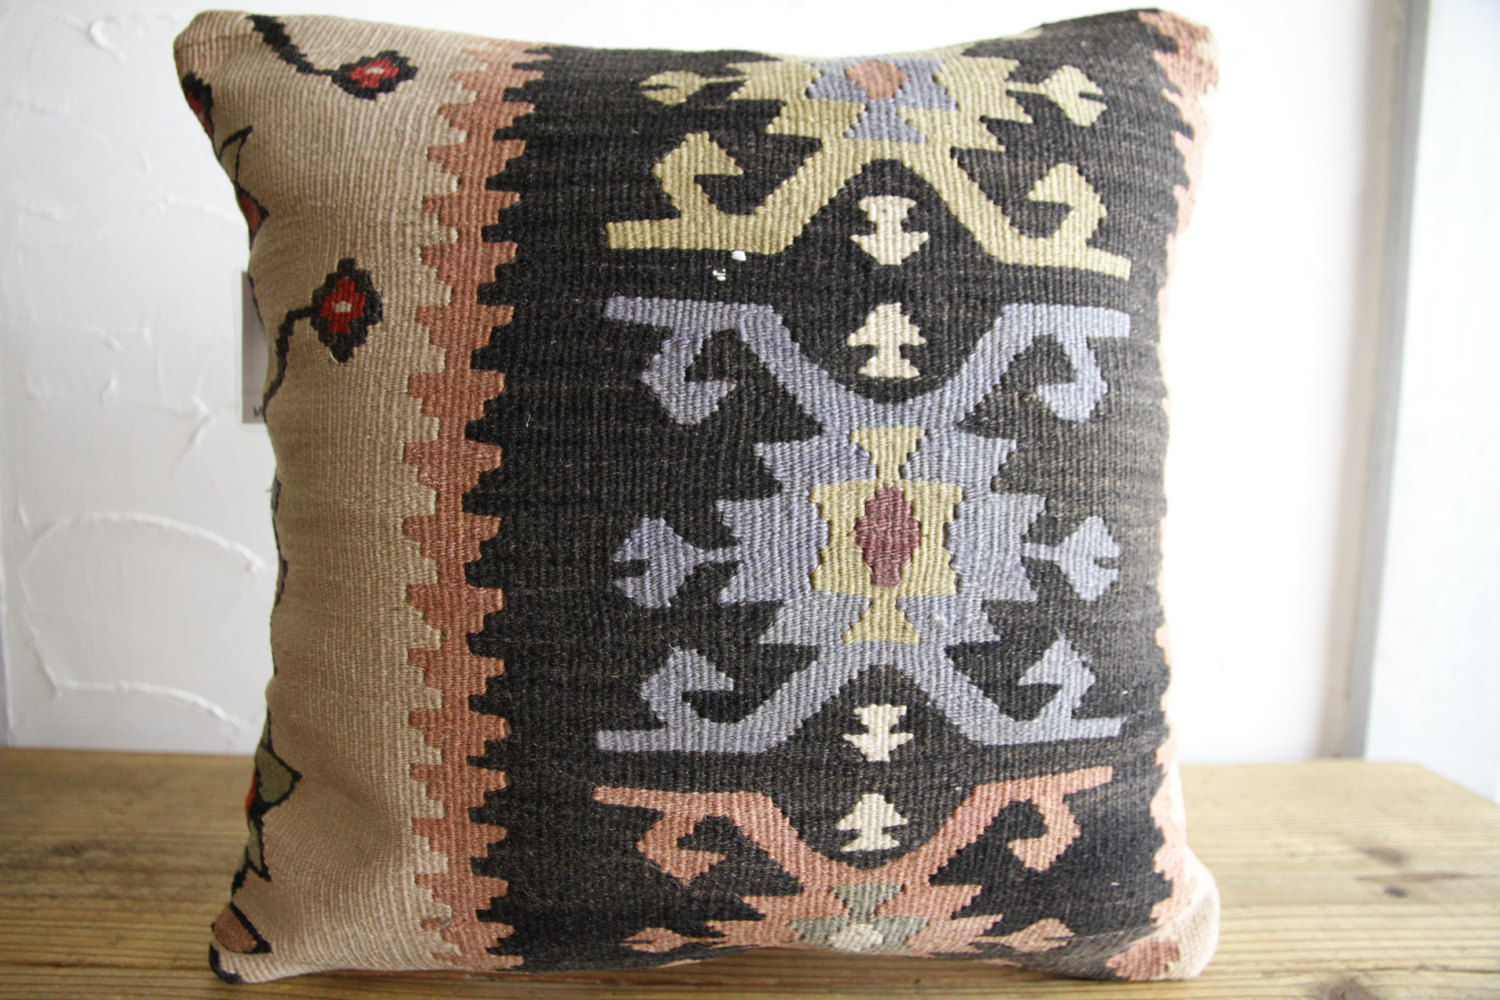 Kilim Pillows |16x16 | Decorative Pillows | 119 | Accent Pillows, Kilim cushion